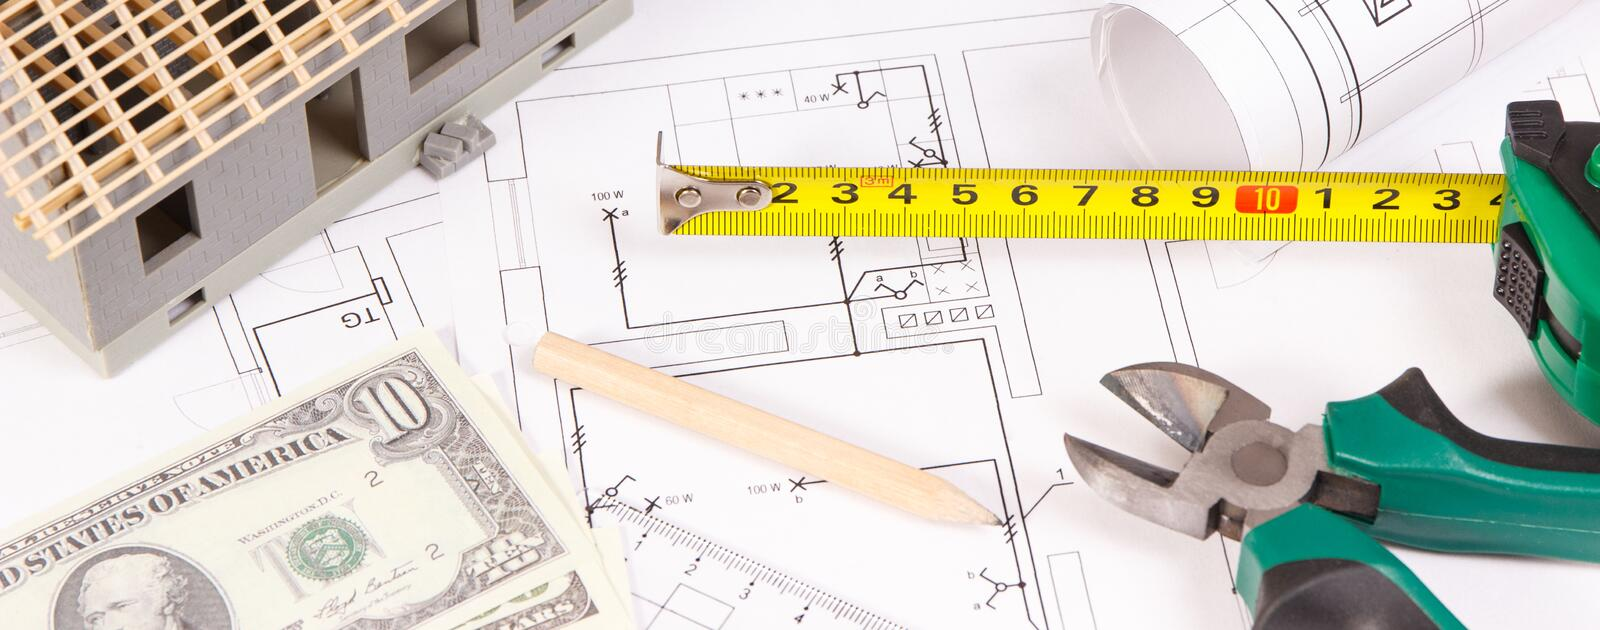 Of Building Wiring Electrician Free Download Wiring Diagrams